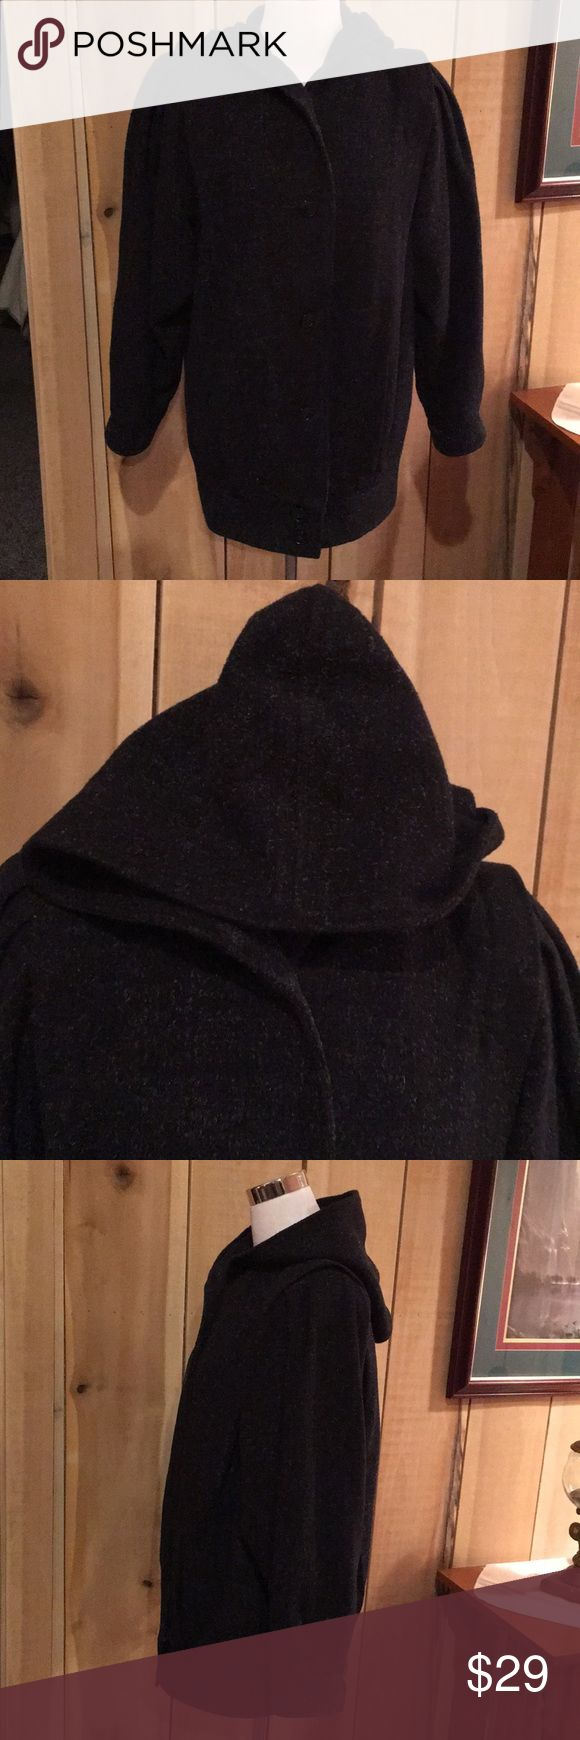 """West side Connection Women's Pea Jacket Coat Good preowned condition Black with specks. Lined Wool Blend.  Sleeves: 25"""" Armpit to Armpit 24"""" Across the Shoulder: 16"""" Length: 29"""" Westside Collection Jackets & Coats Pea Coats"""